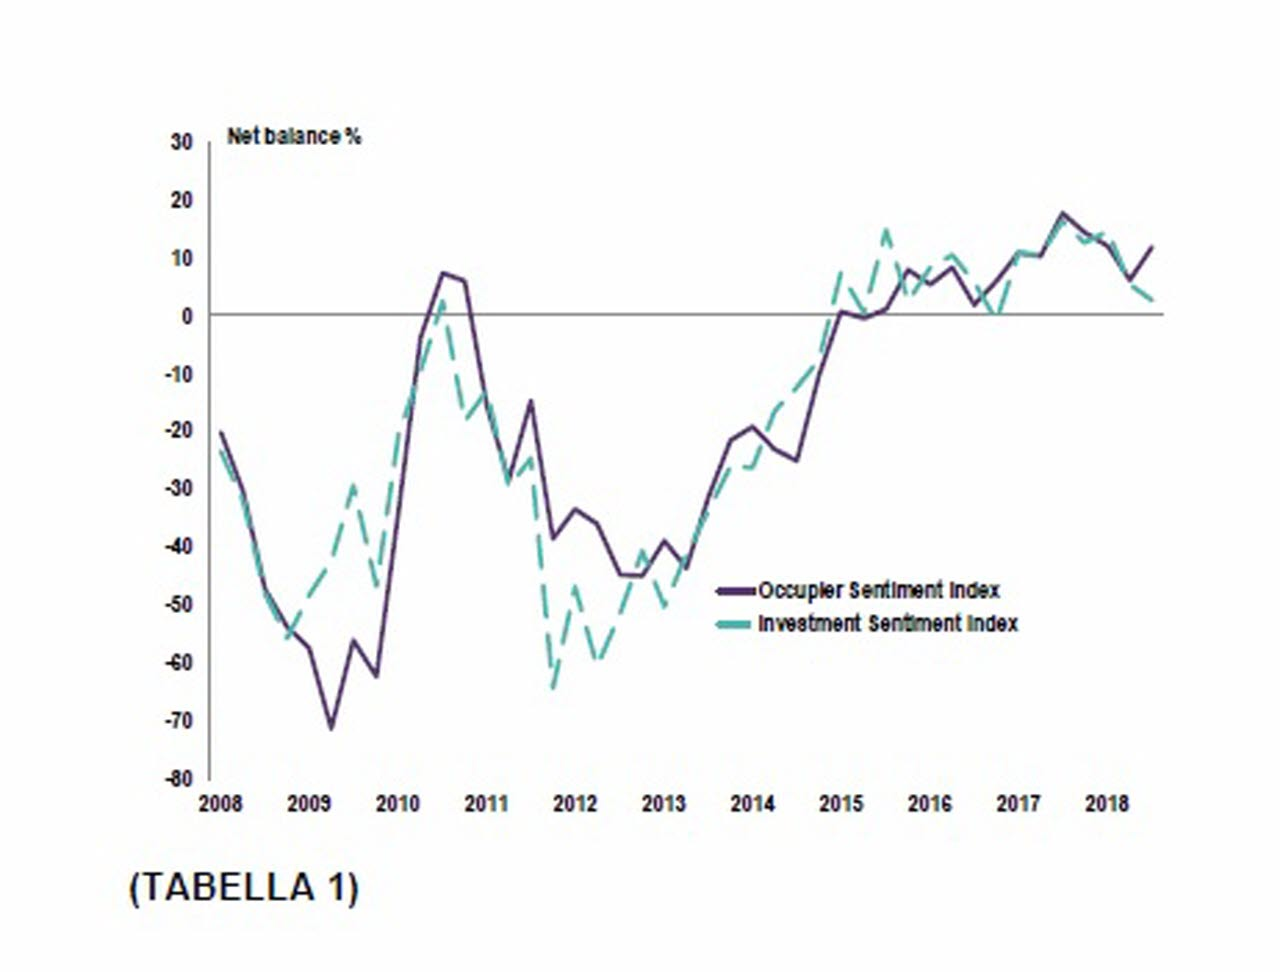 Occupier and investment sentiment indices